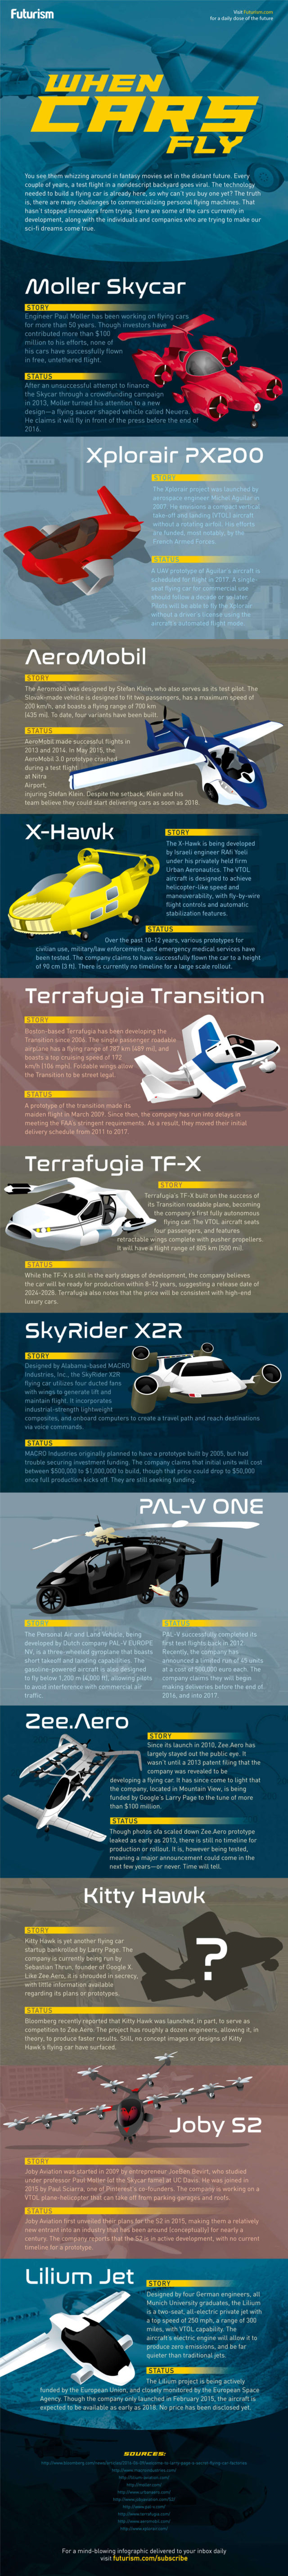 Flying Cars of Tomorrow - infographic